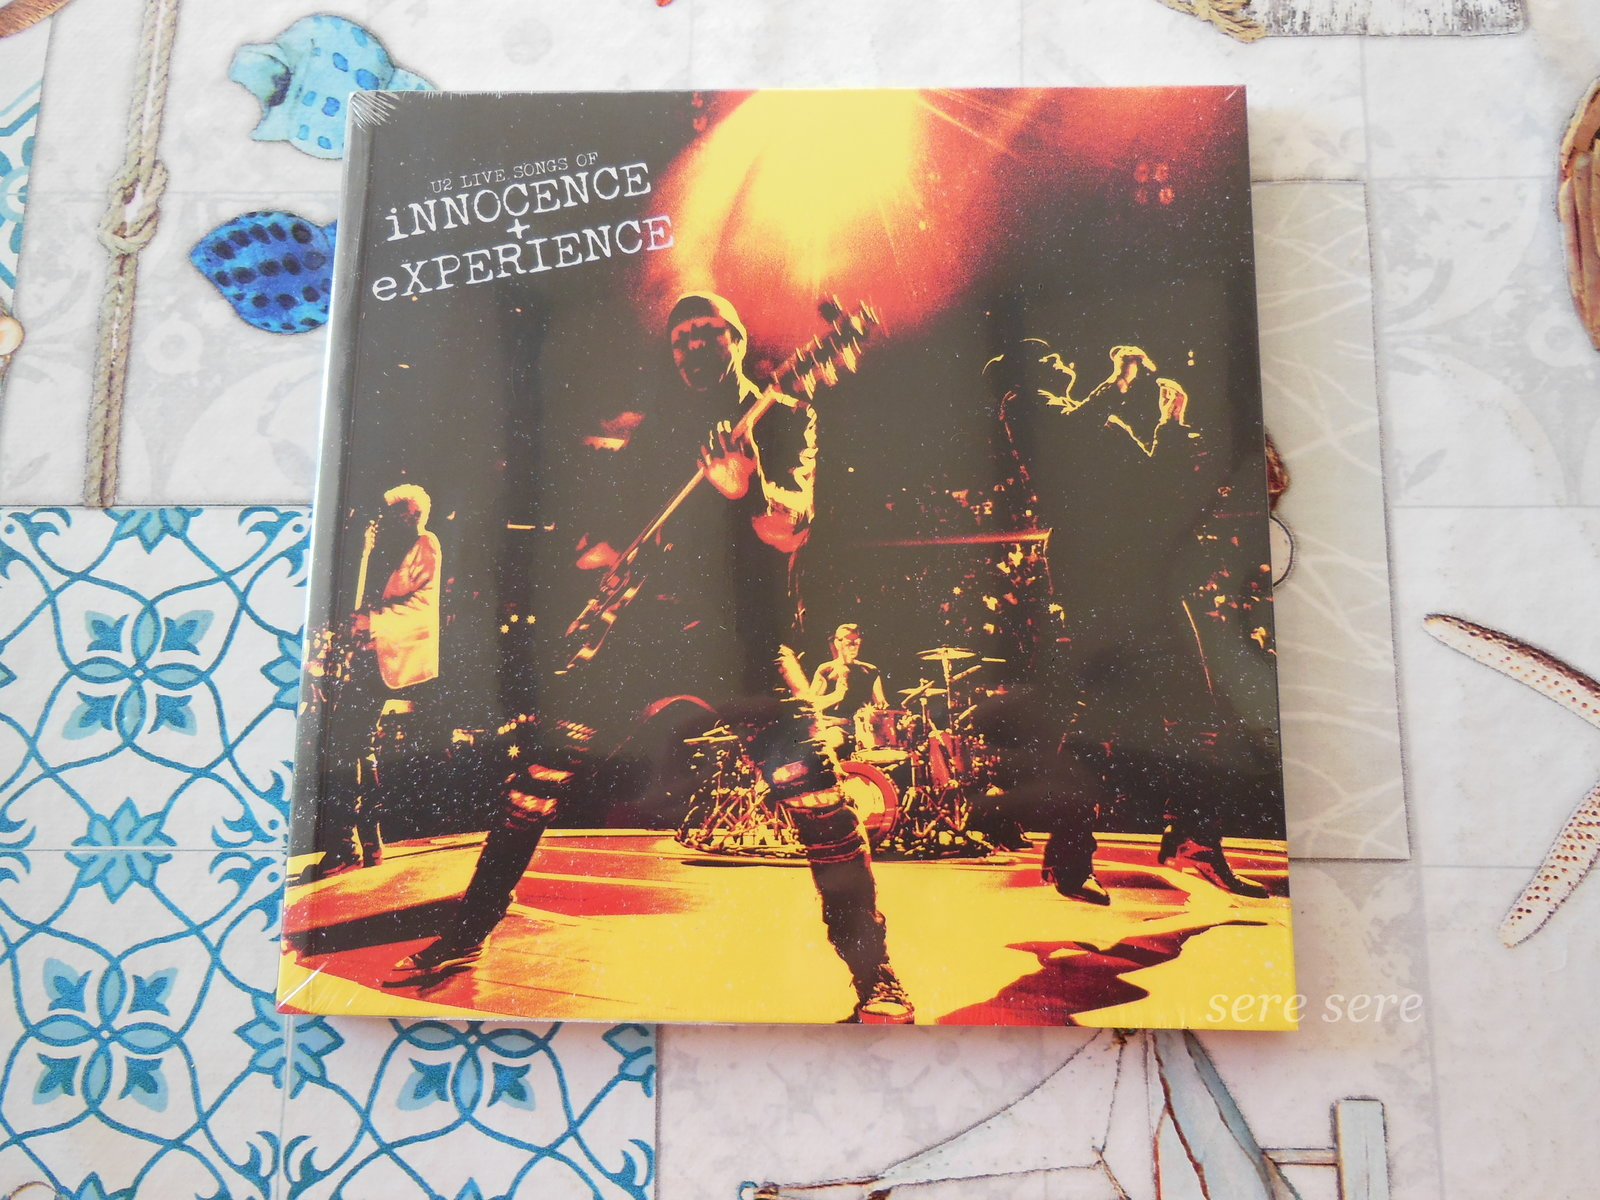 My U2 Live Songs of iNNOCENCE + eXPERIENCE